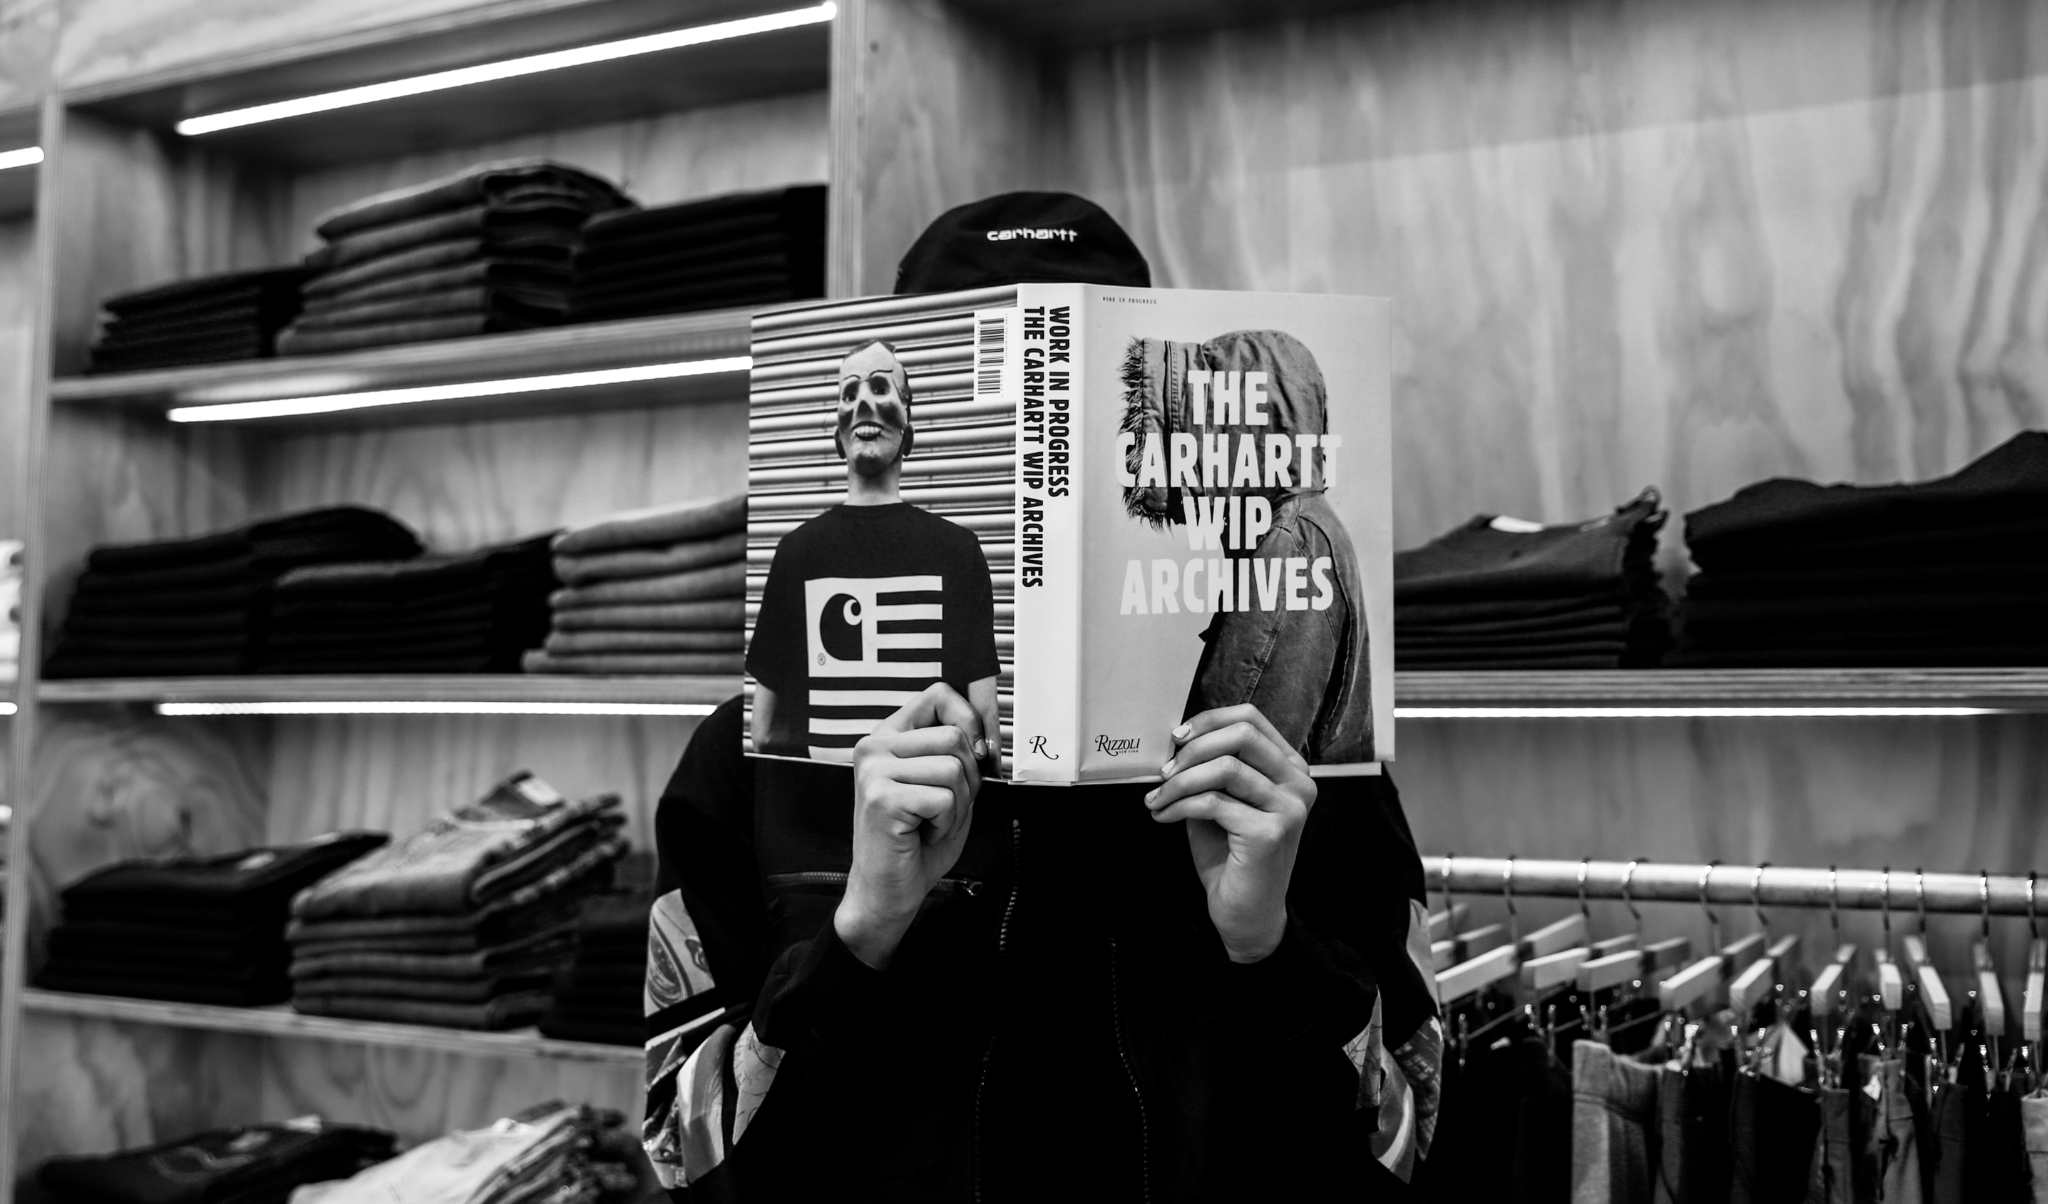 Carhartt WIP Archives Book giveaway.